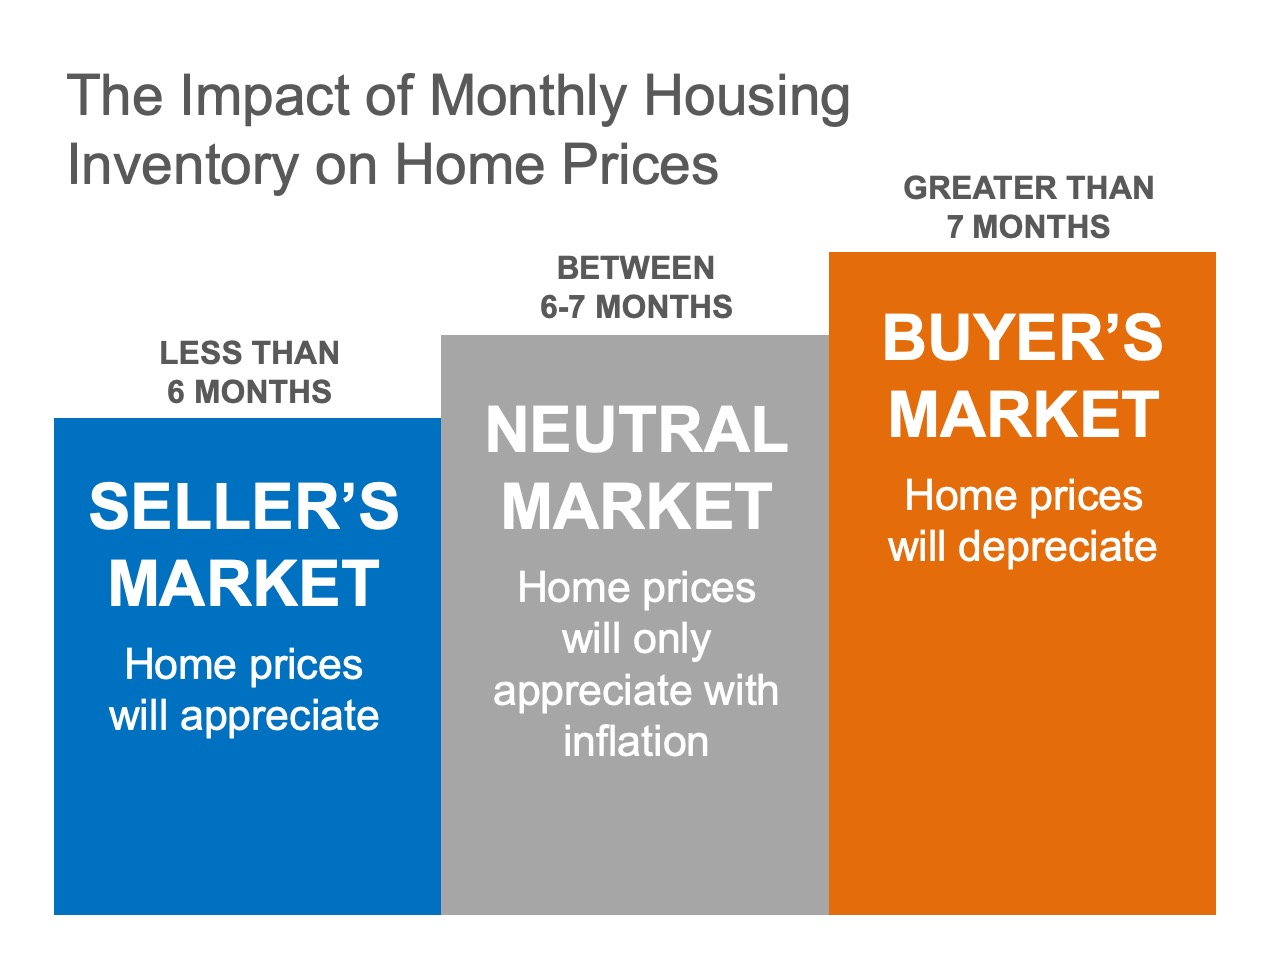 Existing-Home Sales Report Indicates Now Is a Great Time to Sell | Simplifying The Market